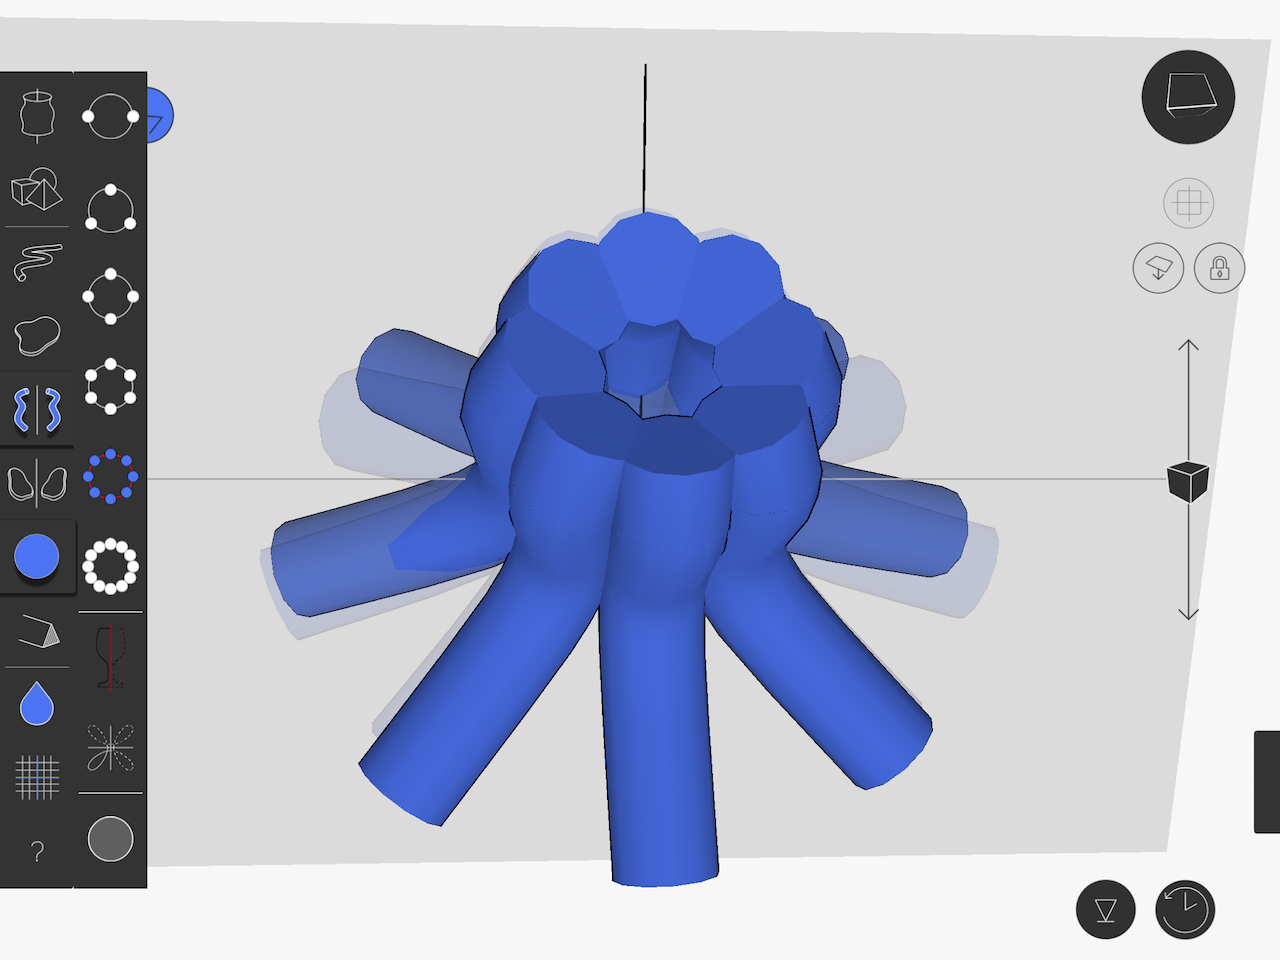 Trying to create a 3D model?